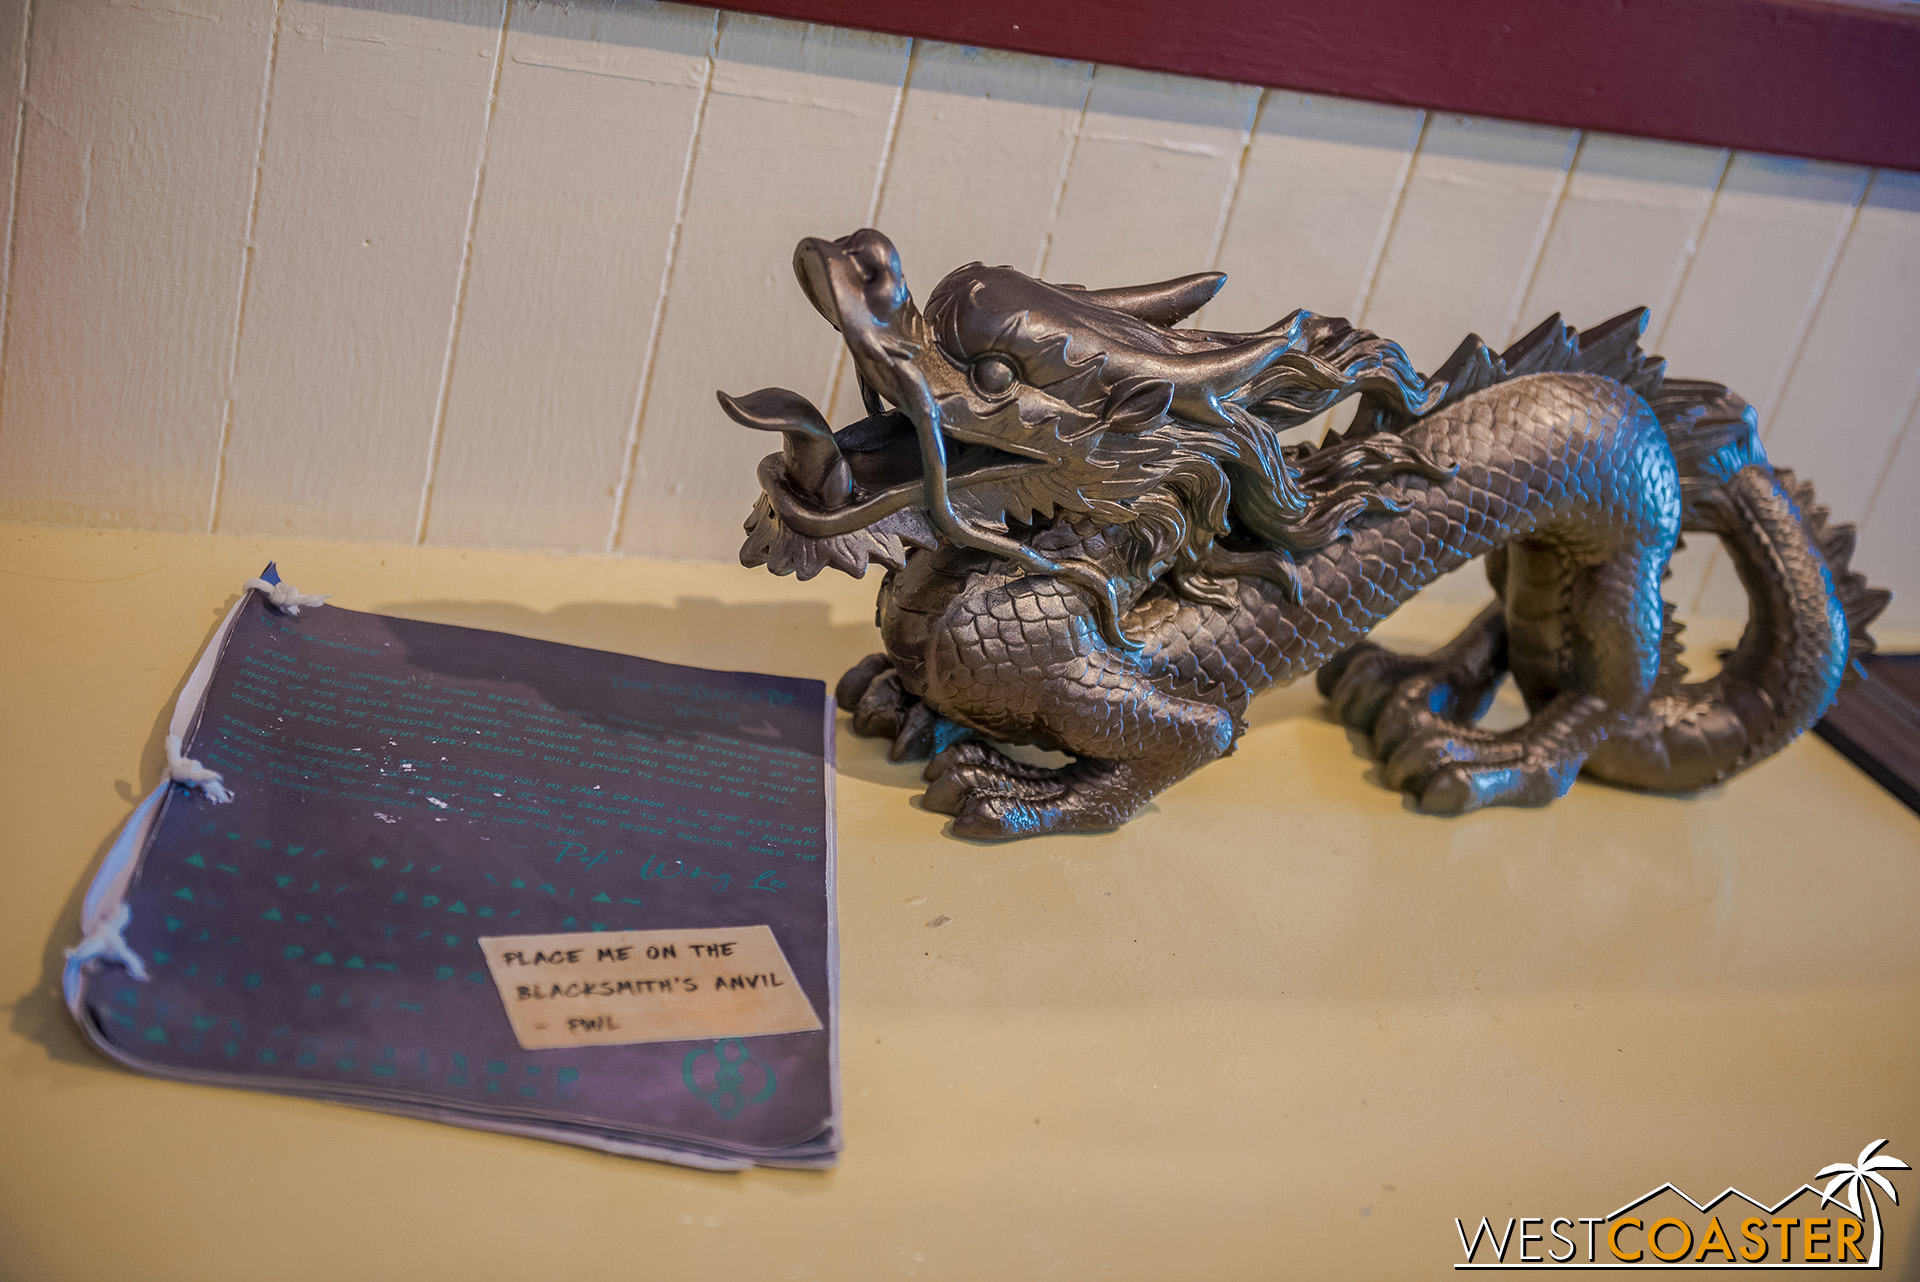 The jade/gold dragon and a mystery book of coded messages!